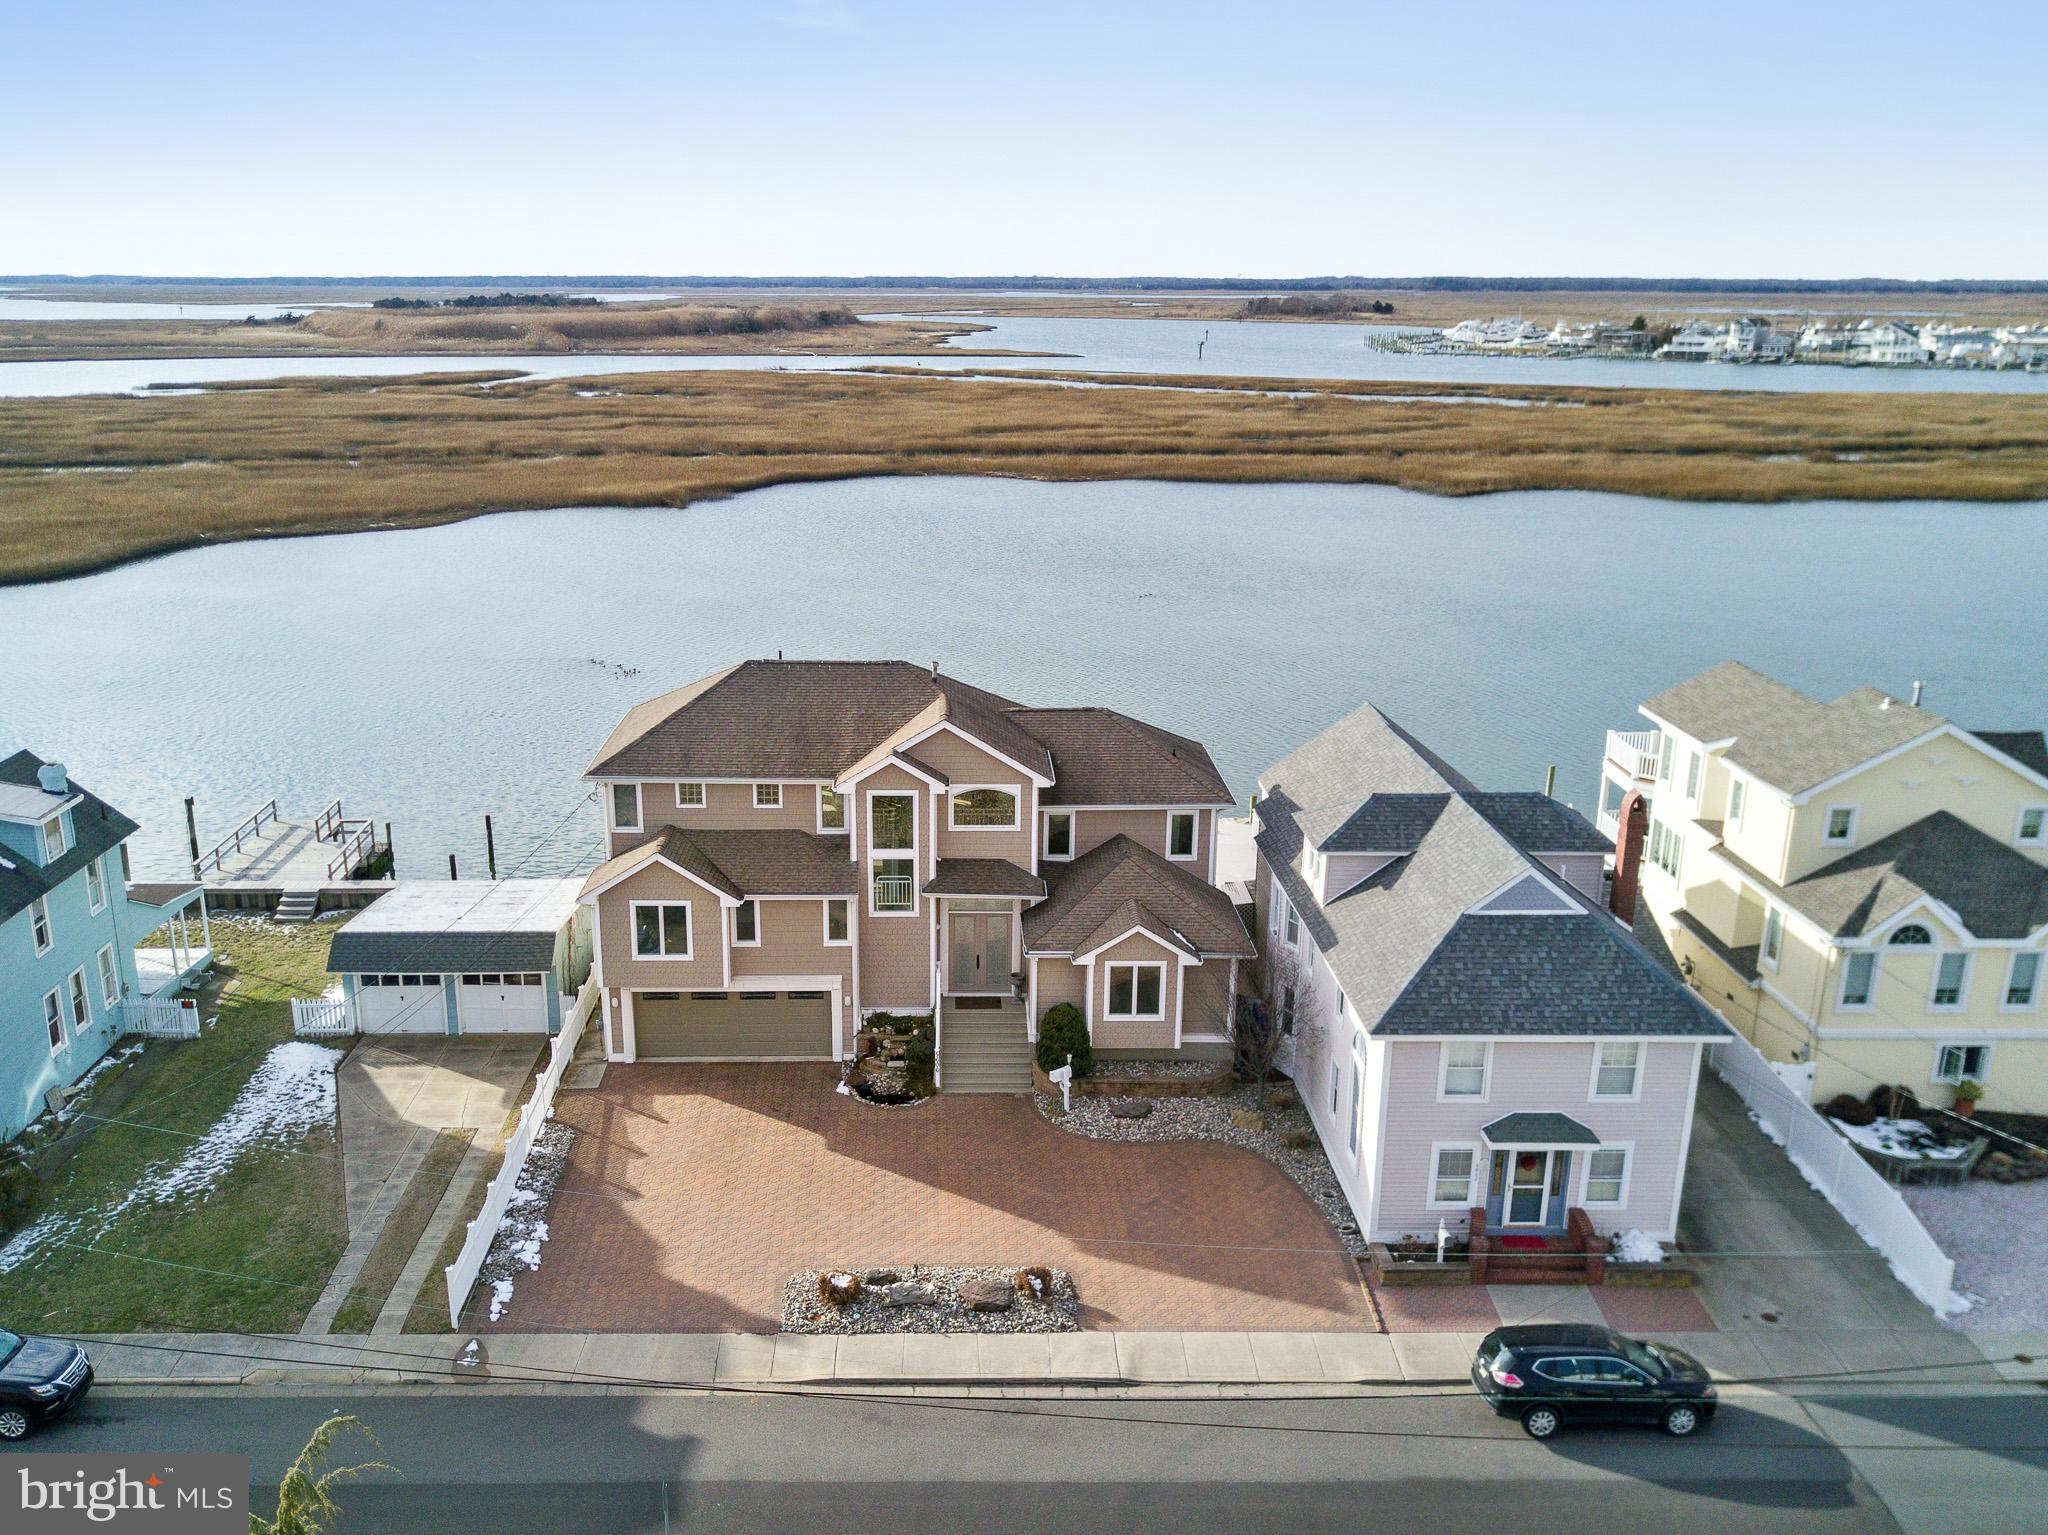 5606 LAKE ROAD, WILDWOOD, NJ 08260